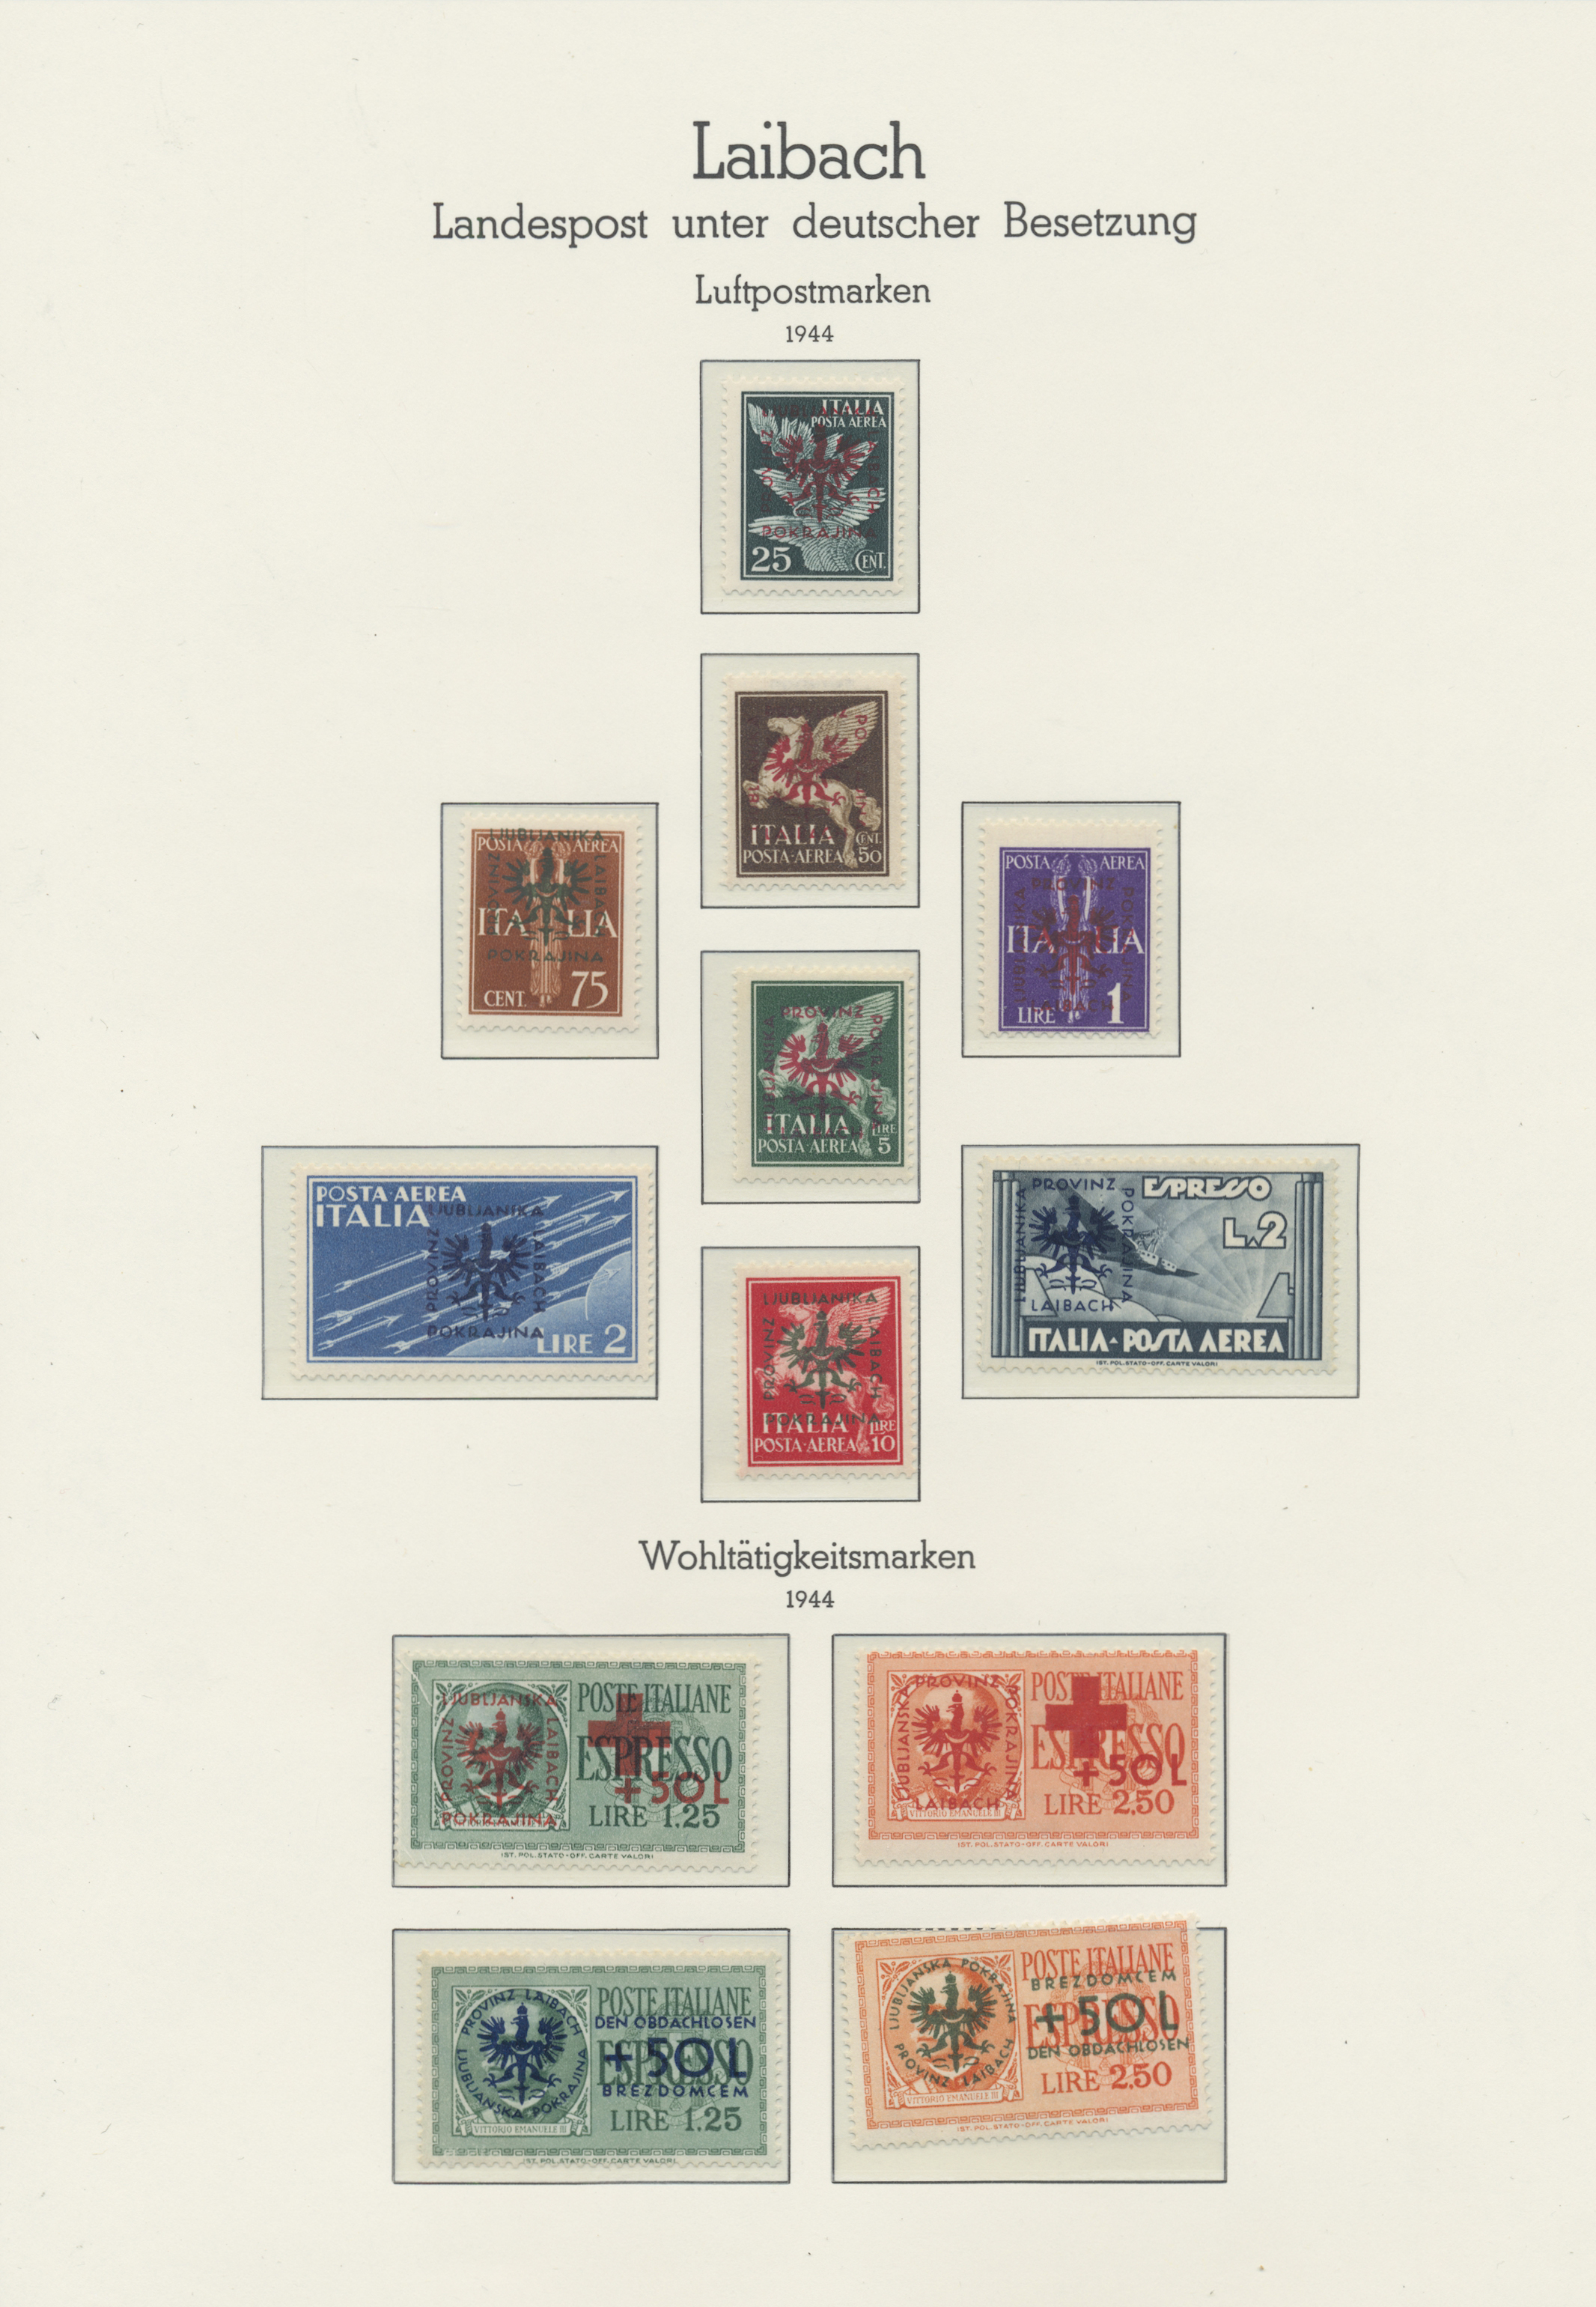 Lot 23762 - Dt. Besetzung II WK - Laibach  -  Auktionshaus Christoph Gärtner GmbH & Co. KG 50th Auction Anniversary Auction - Day 7